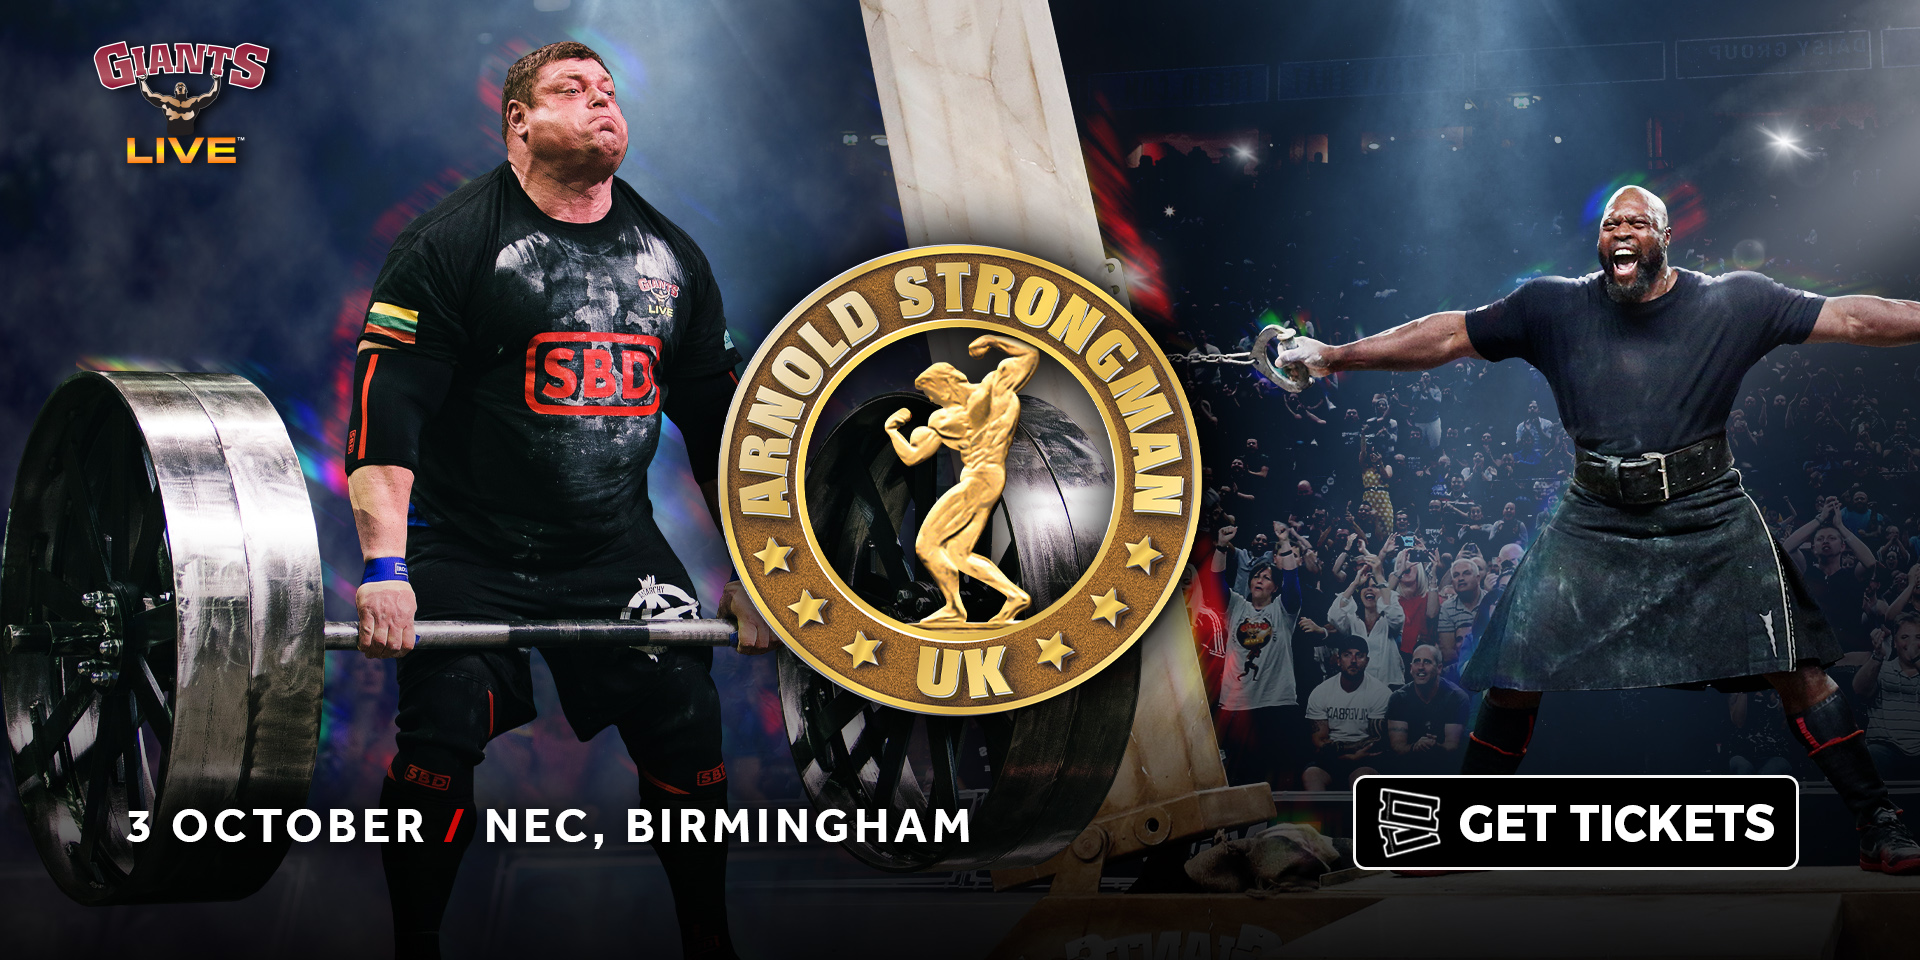 Giants Live at the Arnold Sports Festival UK